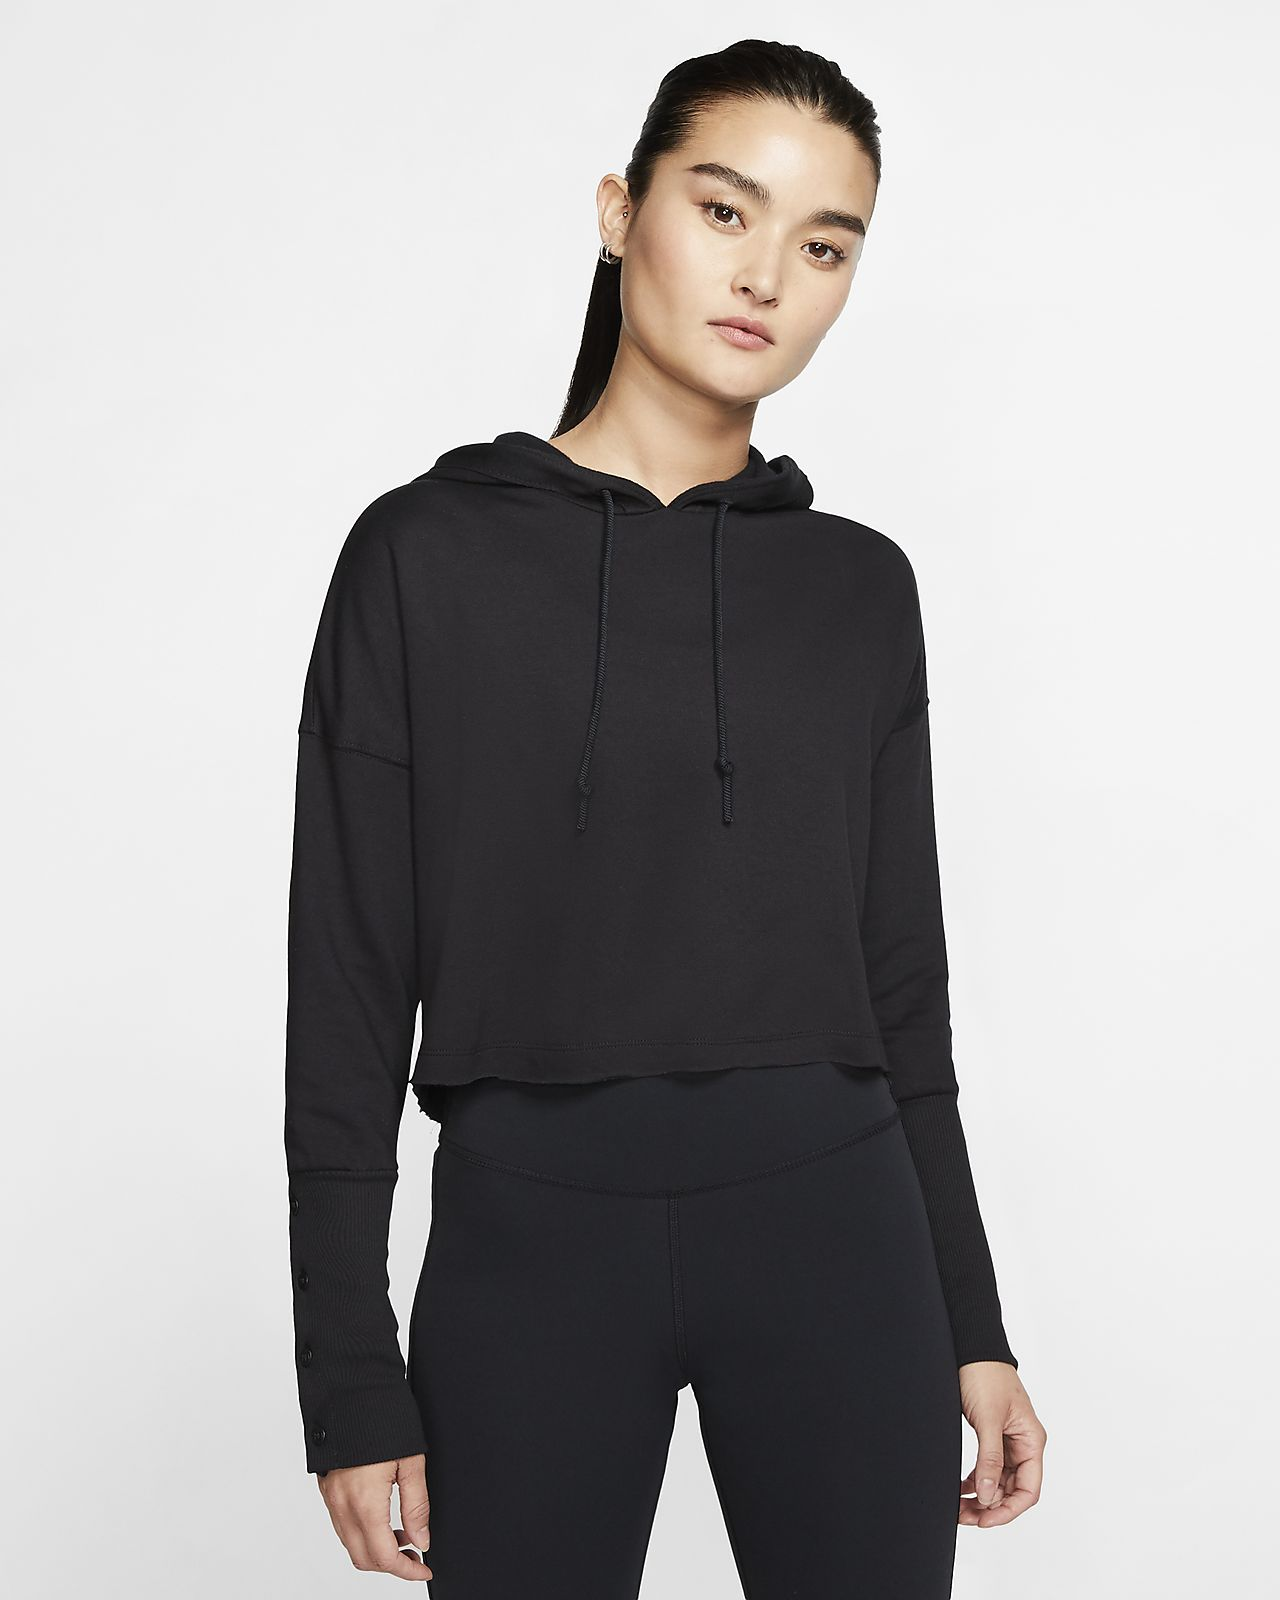 Nike Yoga Luxe Cropped 女子连帽衫